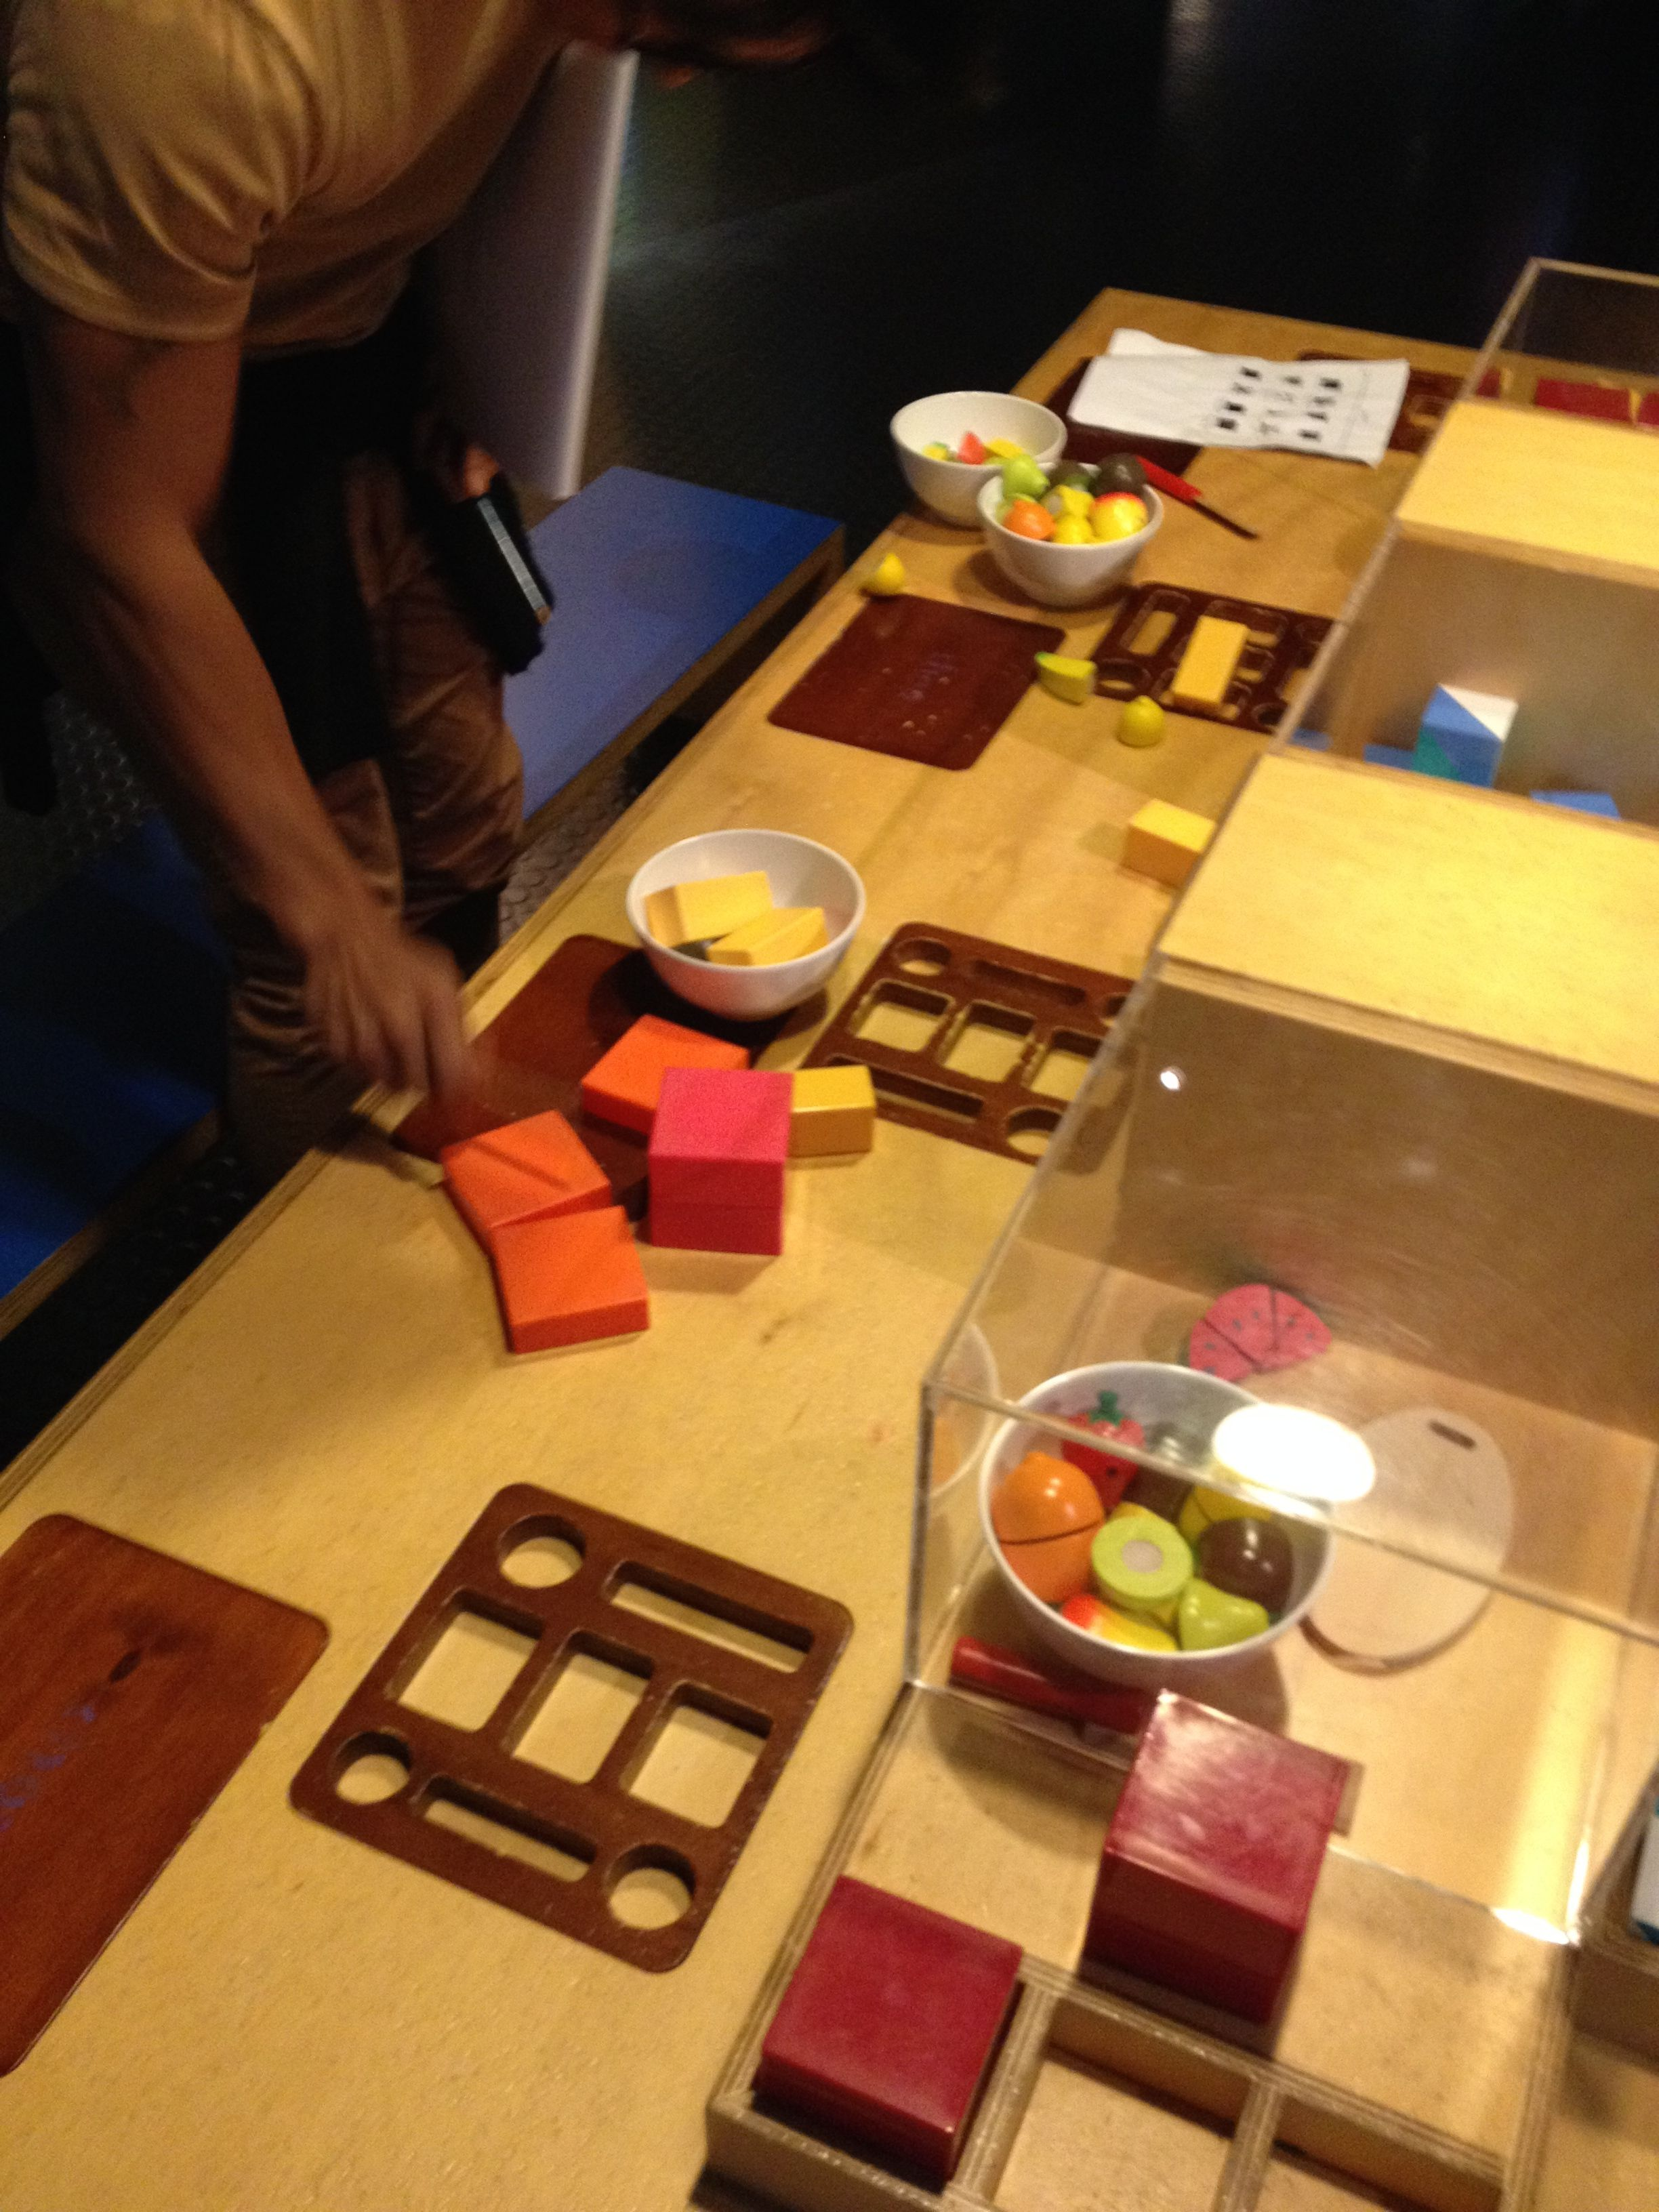 objects interaction. crafts + blocks for kids to play with #powerhousemuseum